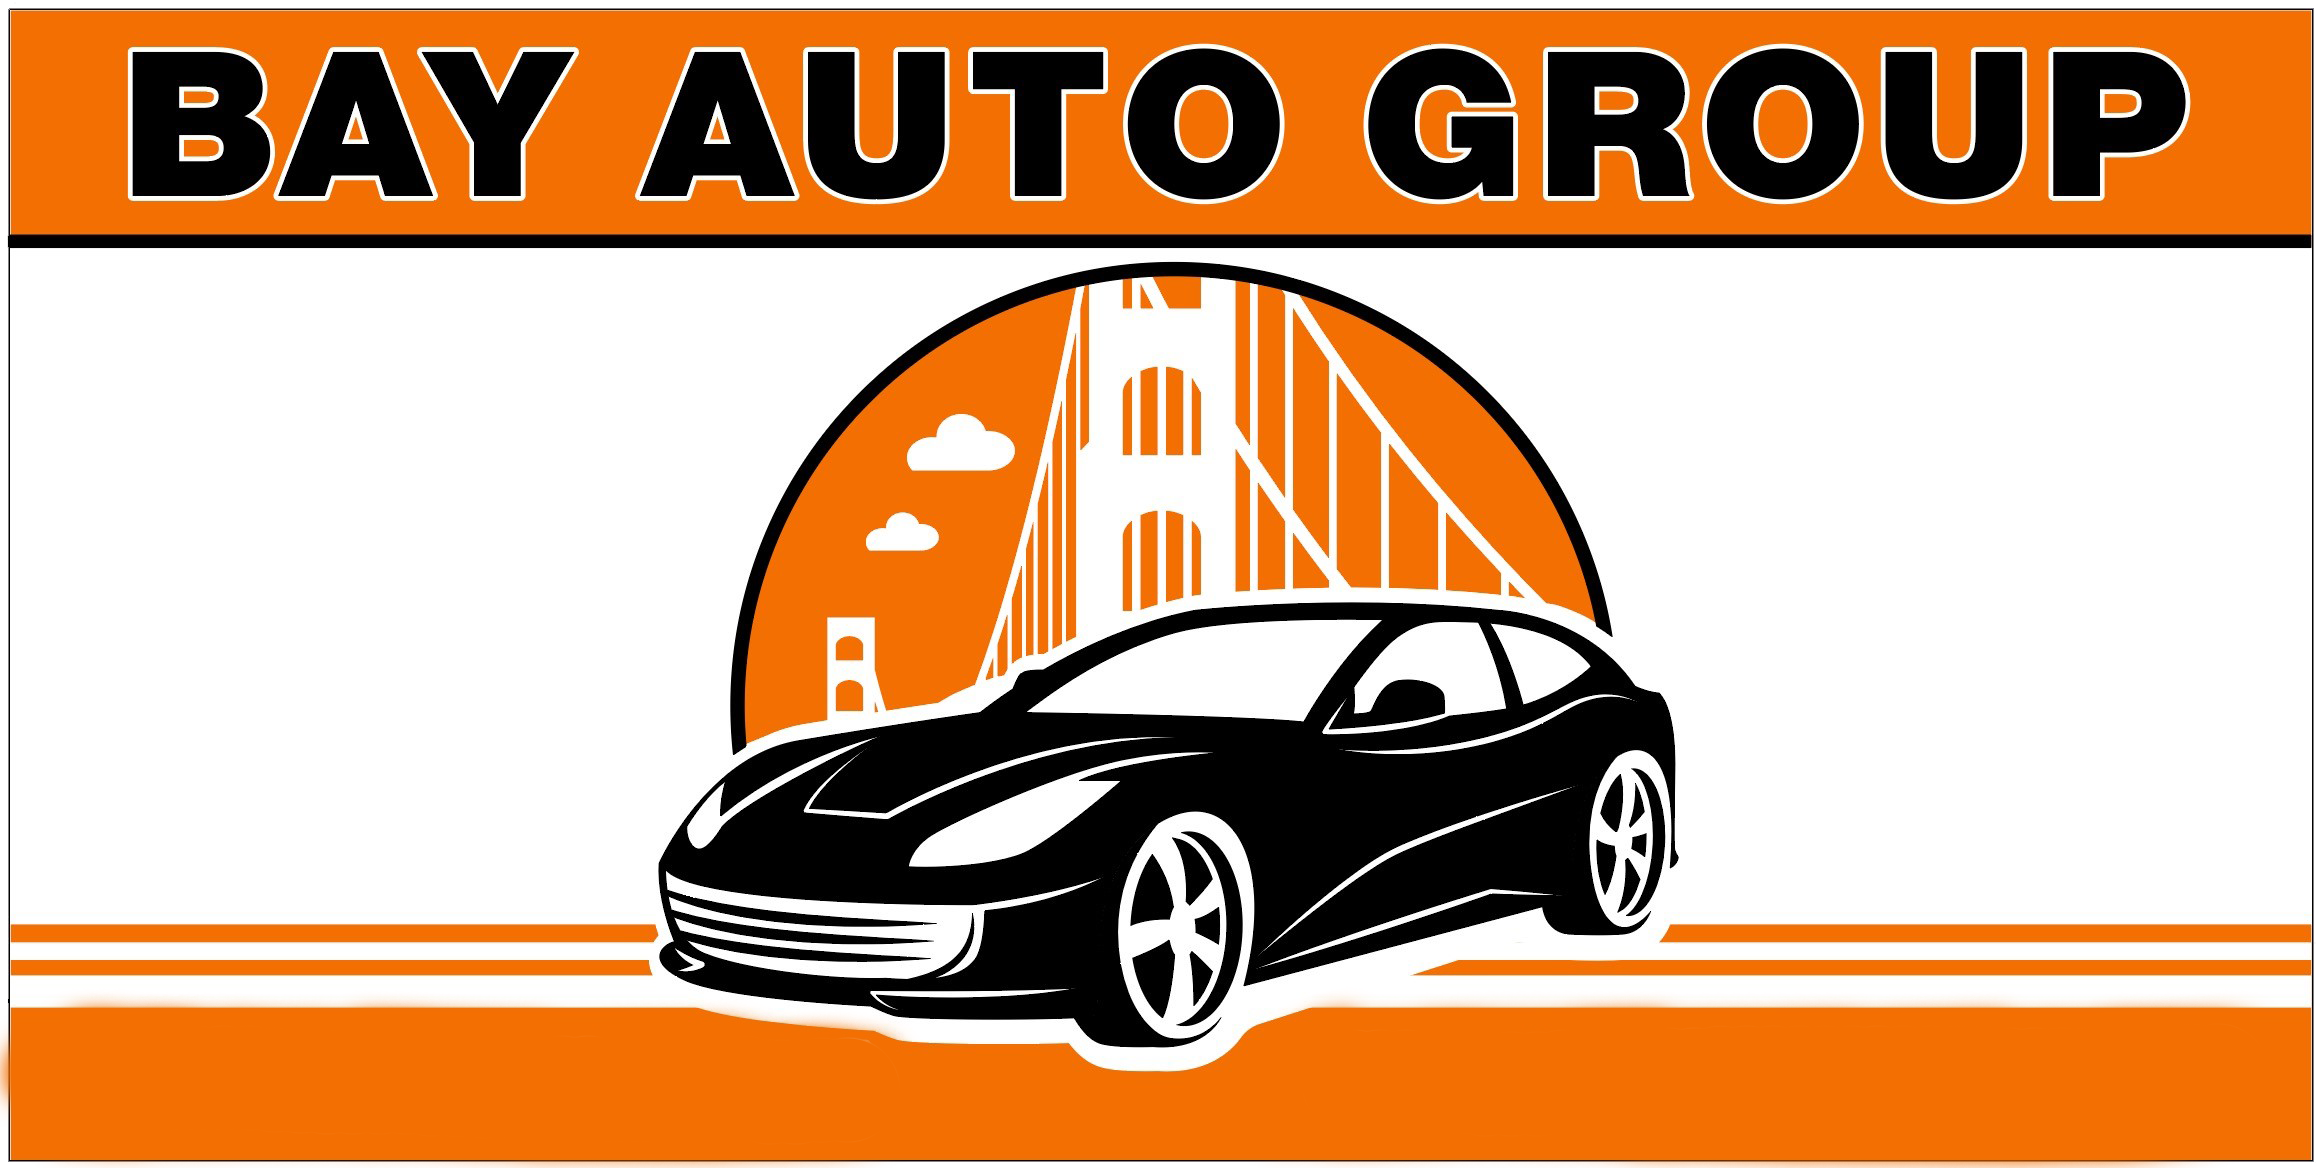 Bay Auto Group